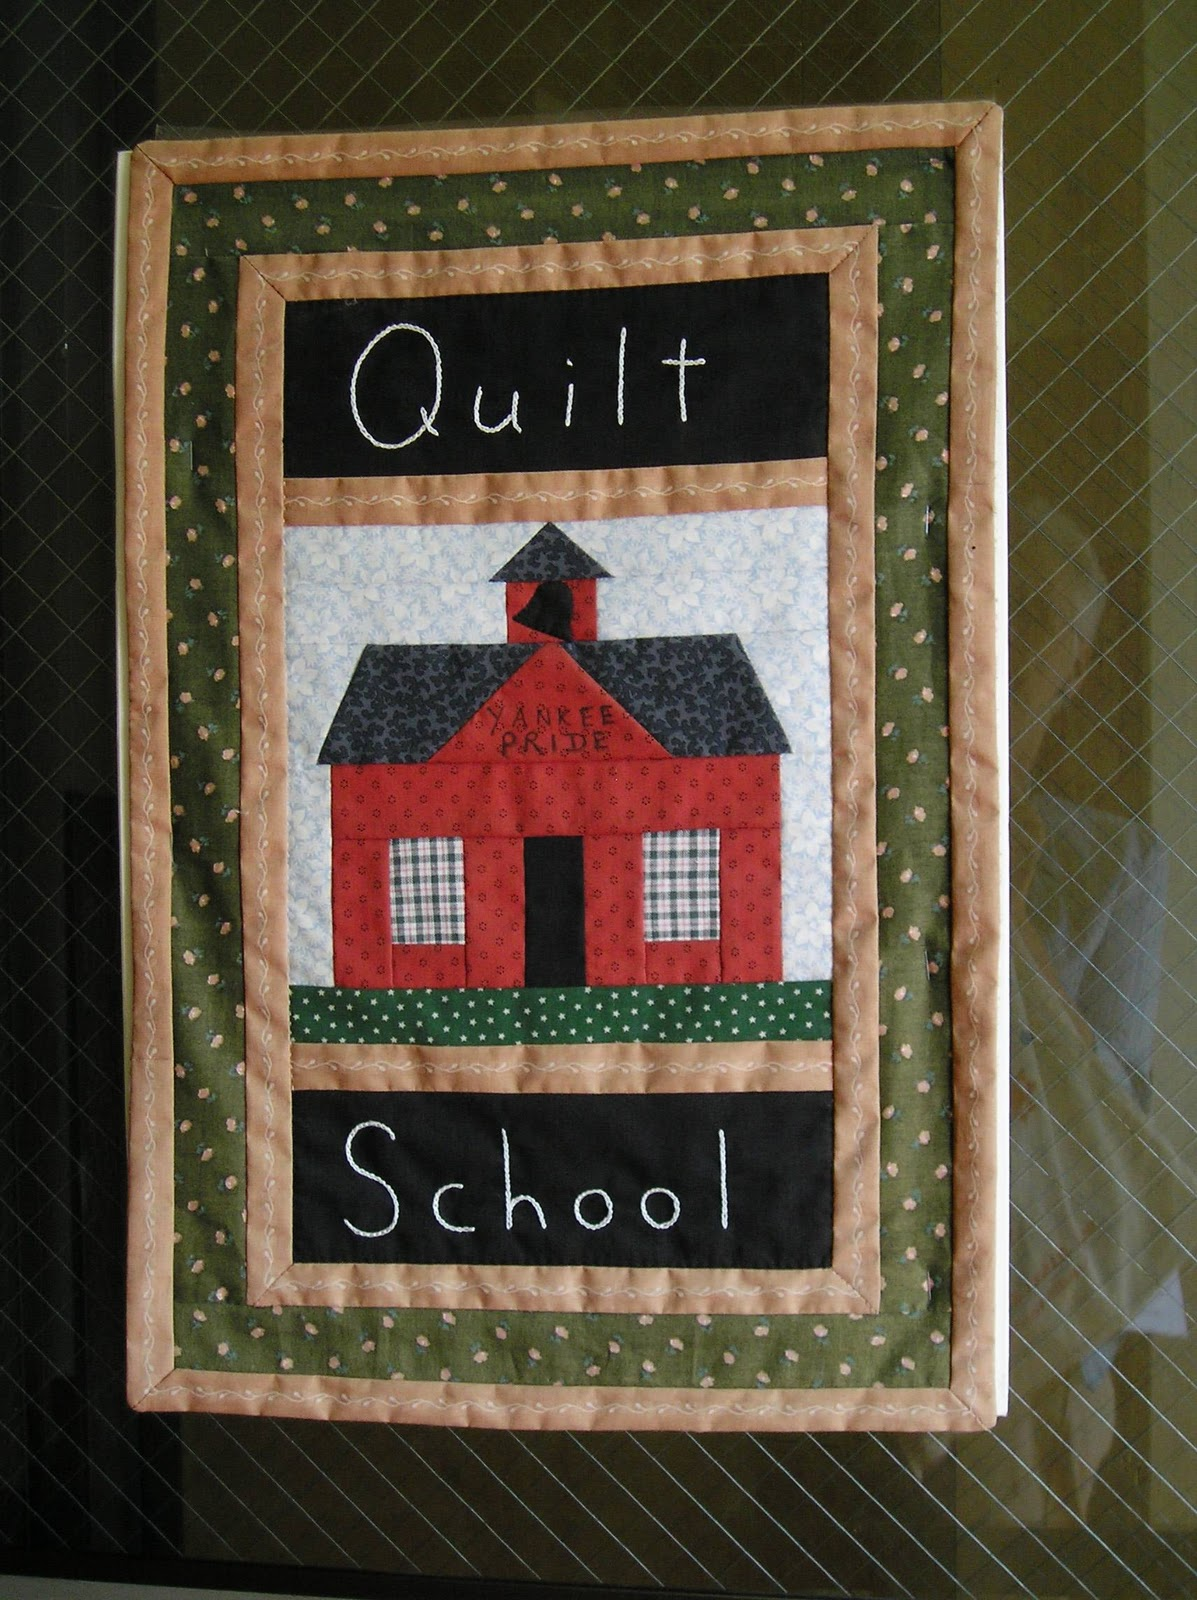 Monkey Business And Quilts: October 2011